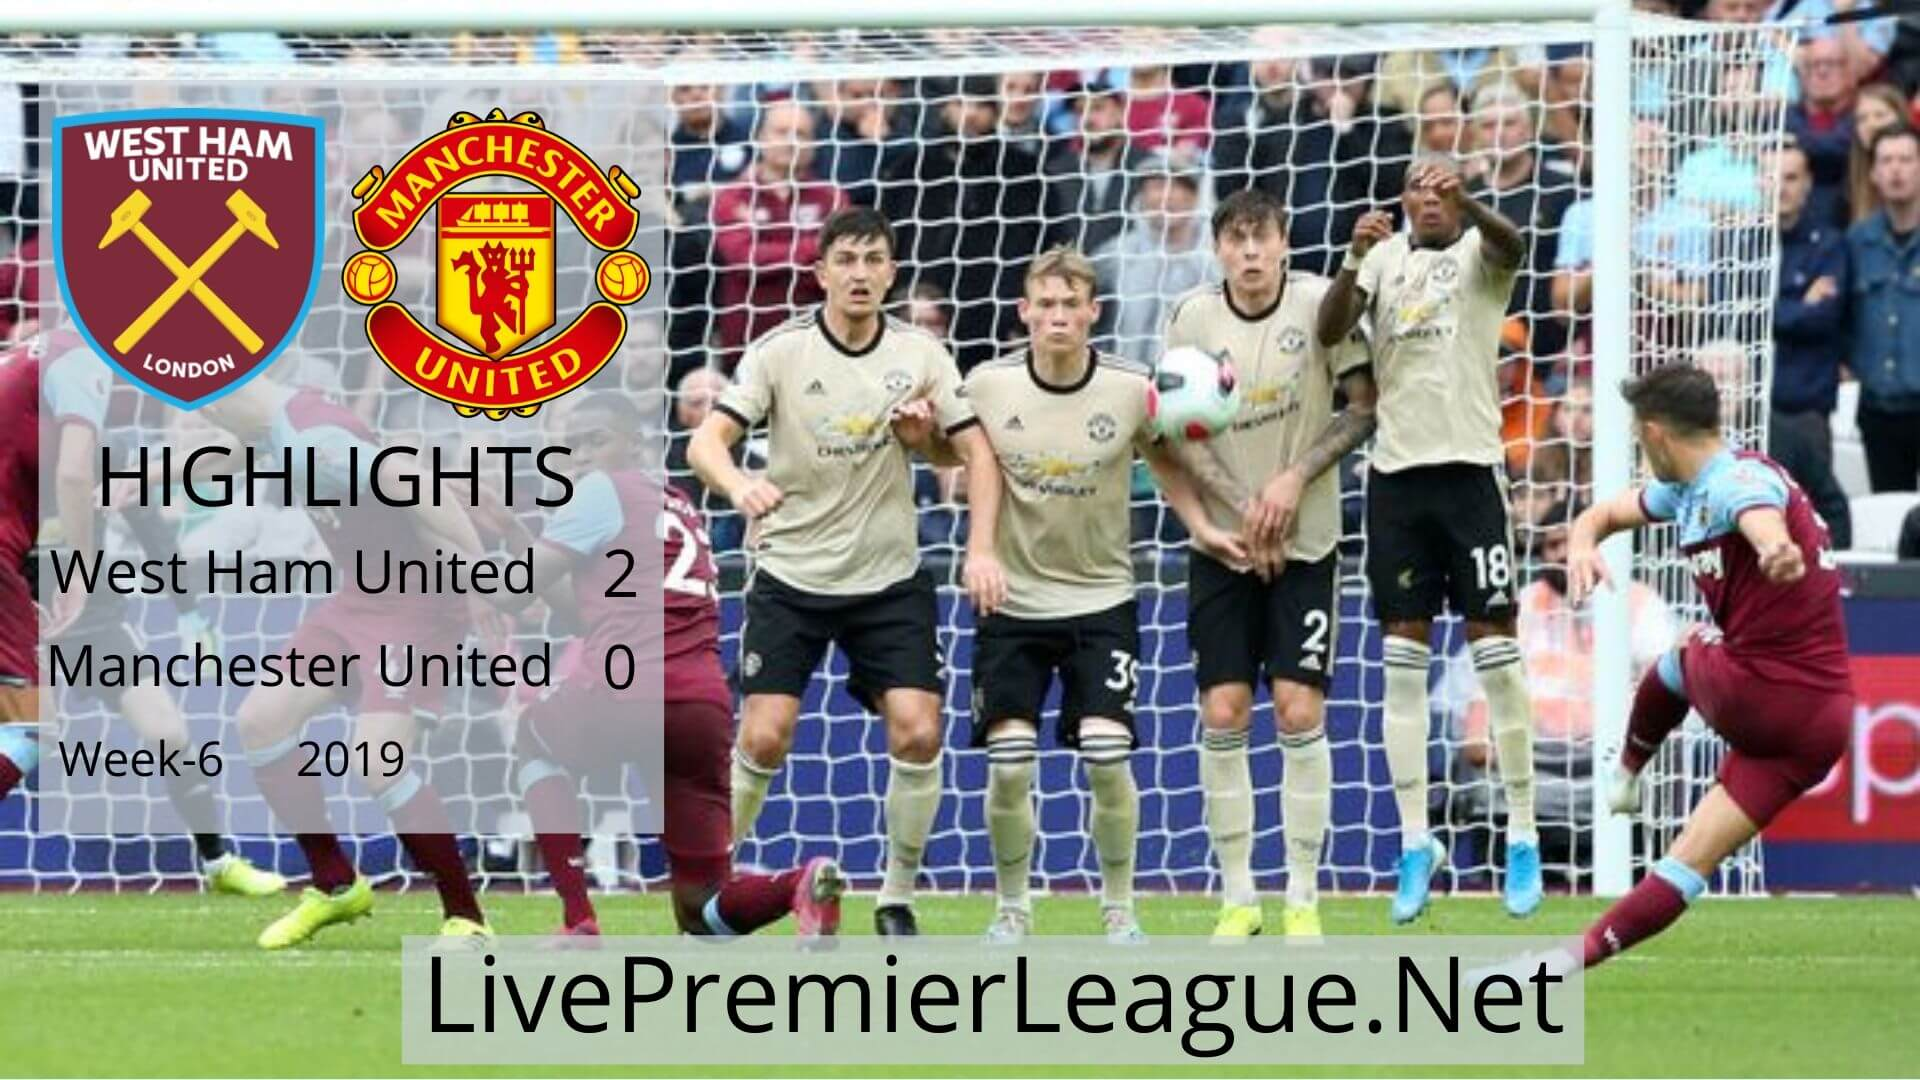 West Ham United vs Manchester United Highlights 2019 Week 6